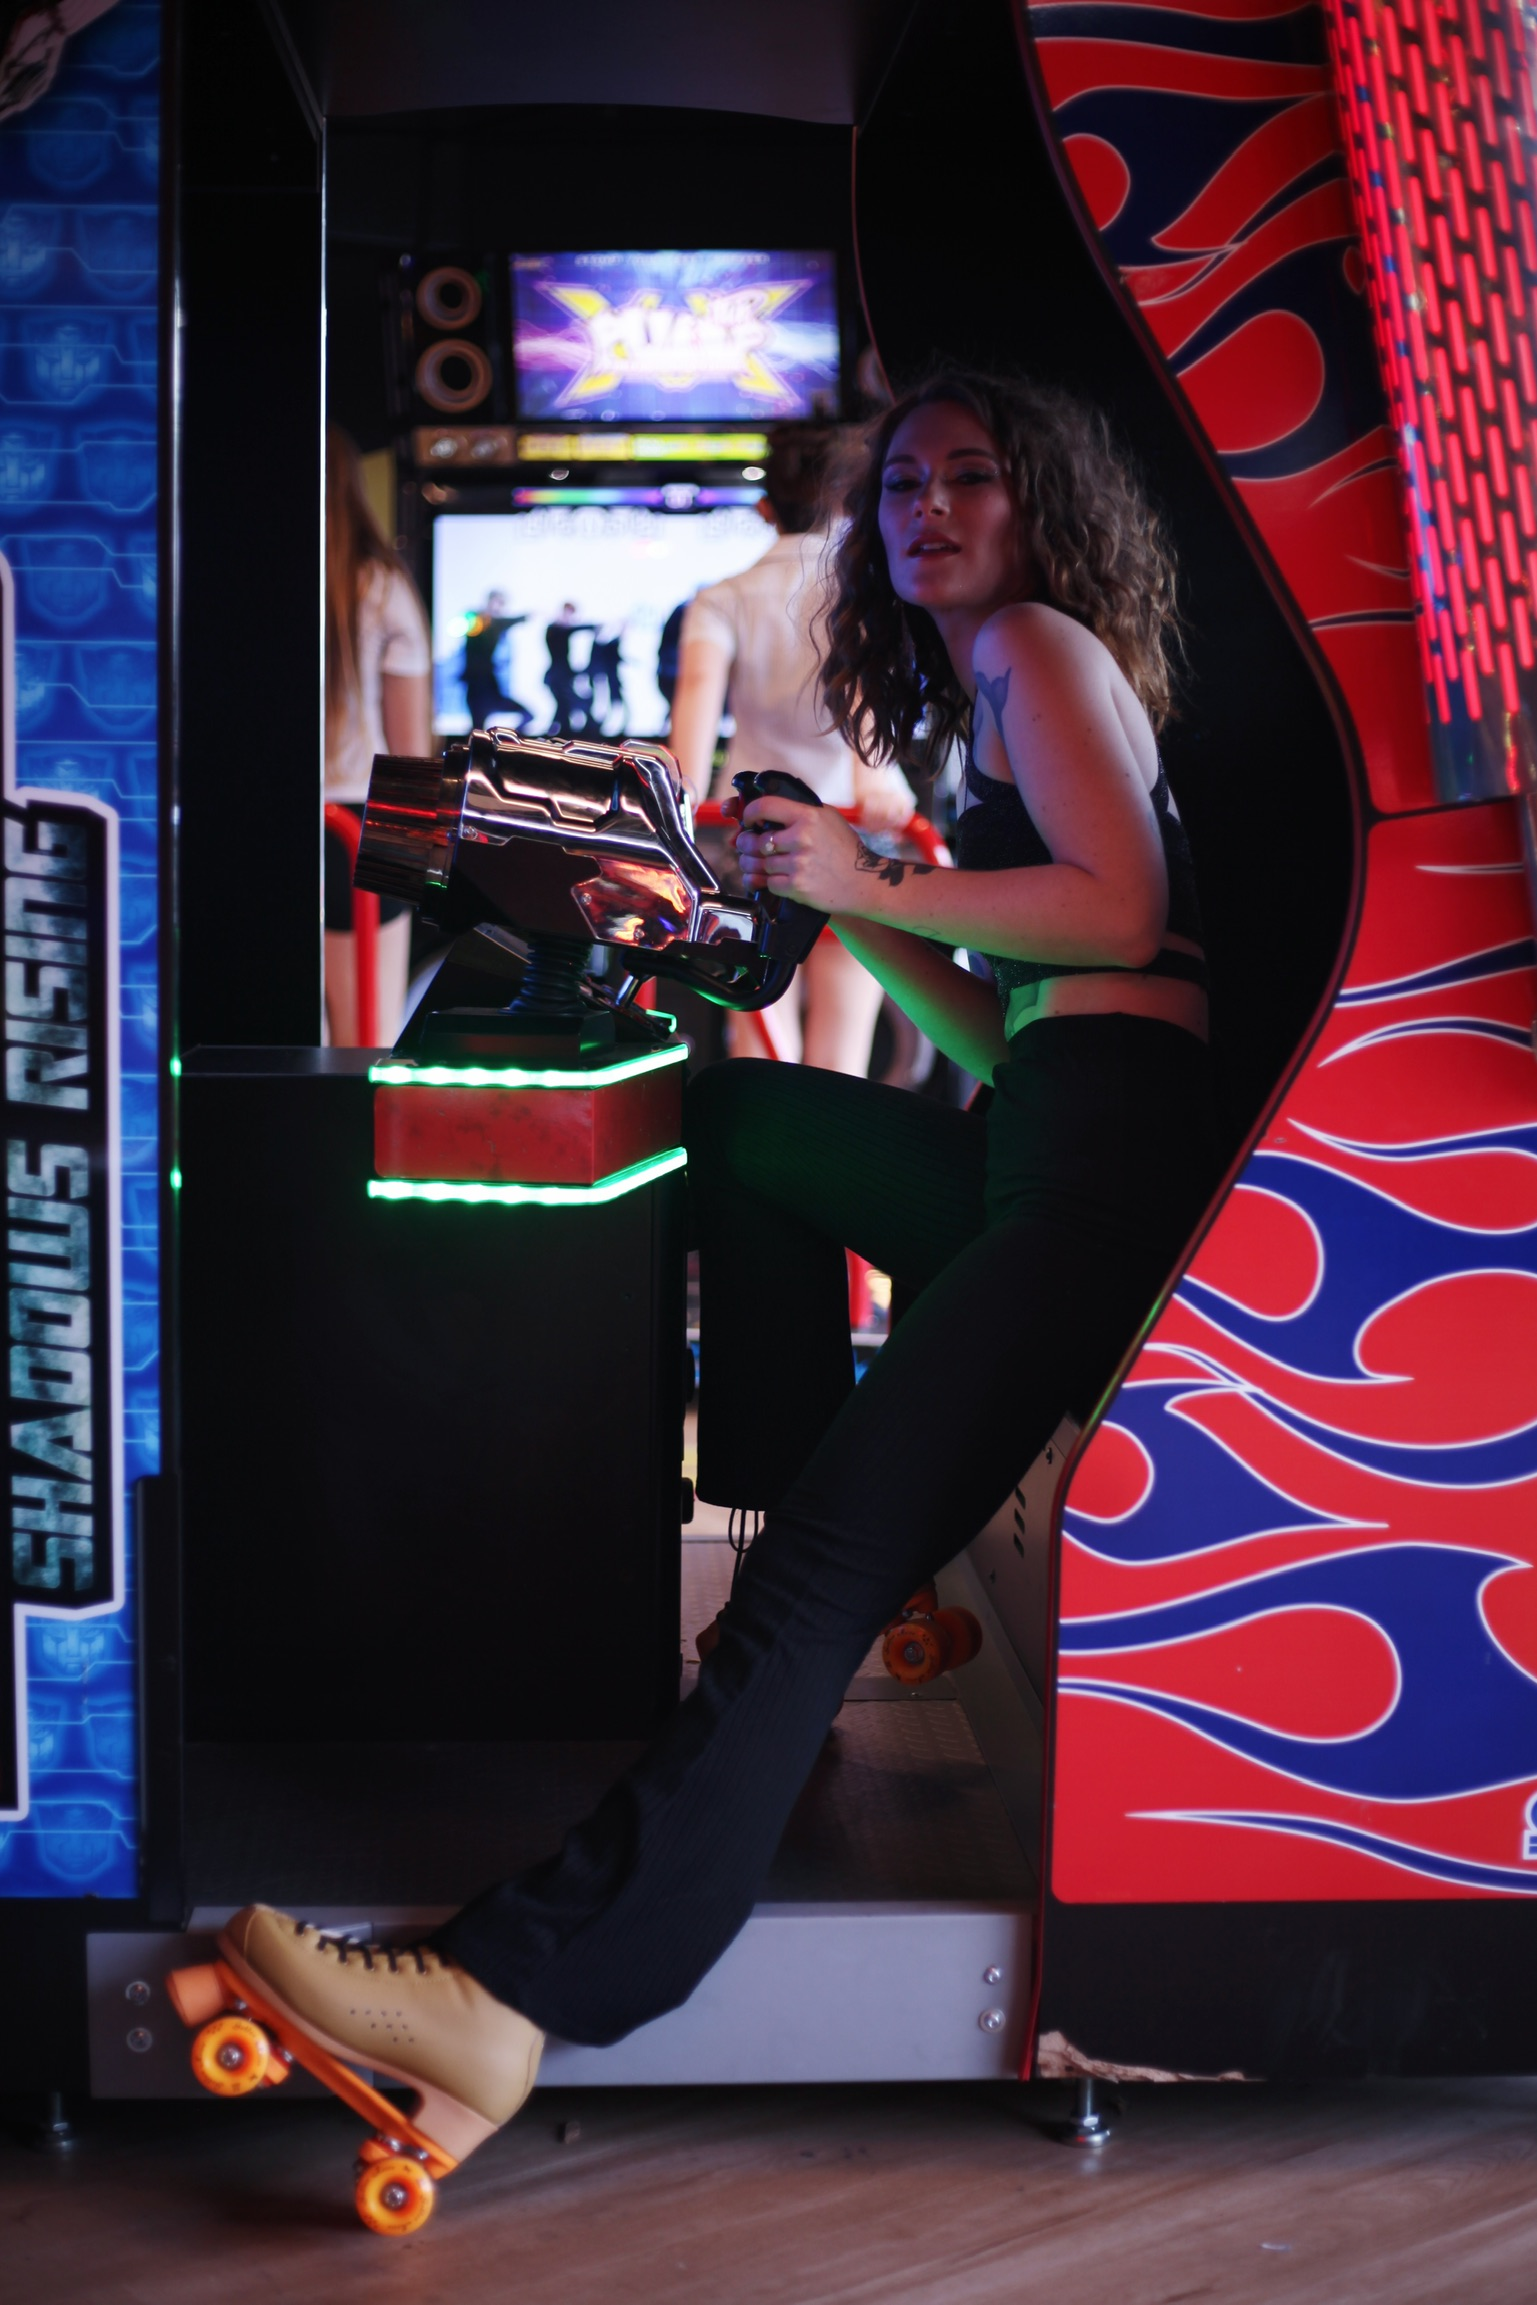 roller girl in arcade game